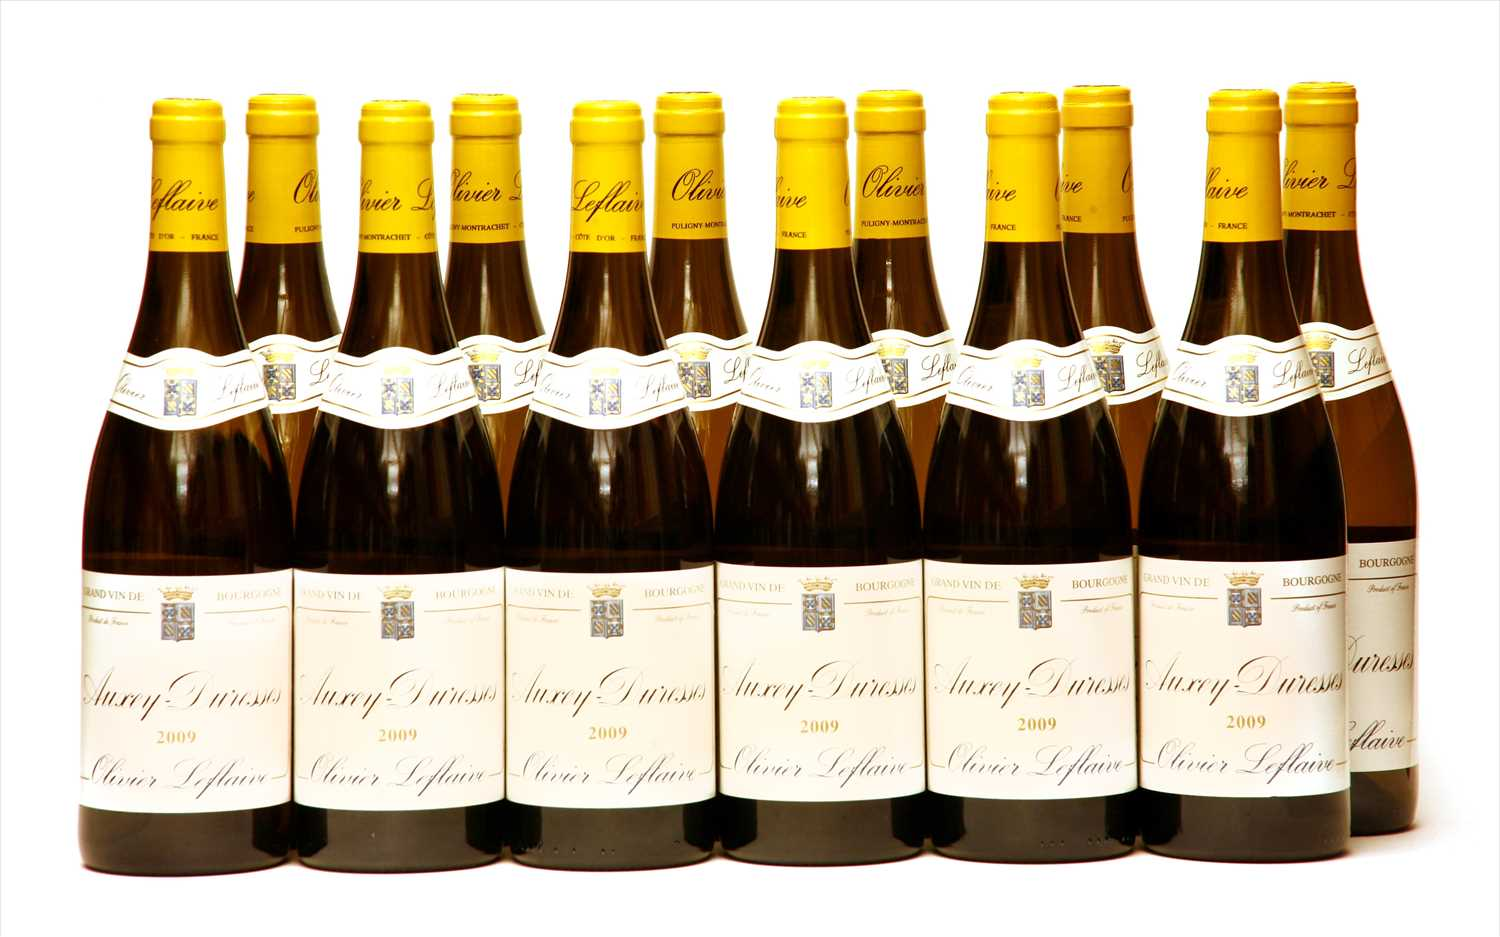 Lot 11-Olivier Leflaive, Auxey Duresses, 2009, twelve bottles (boxed)